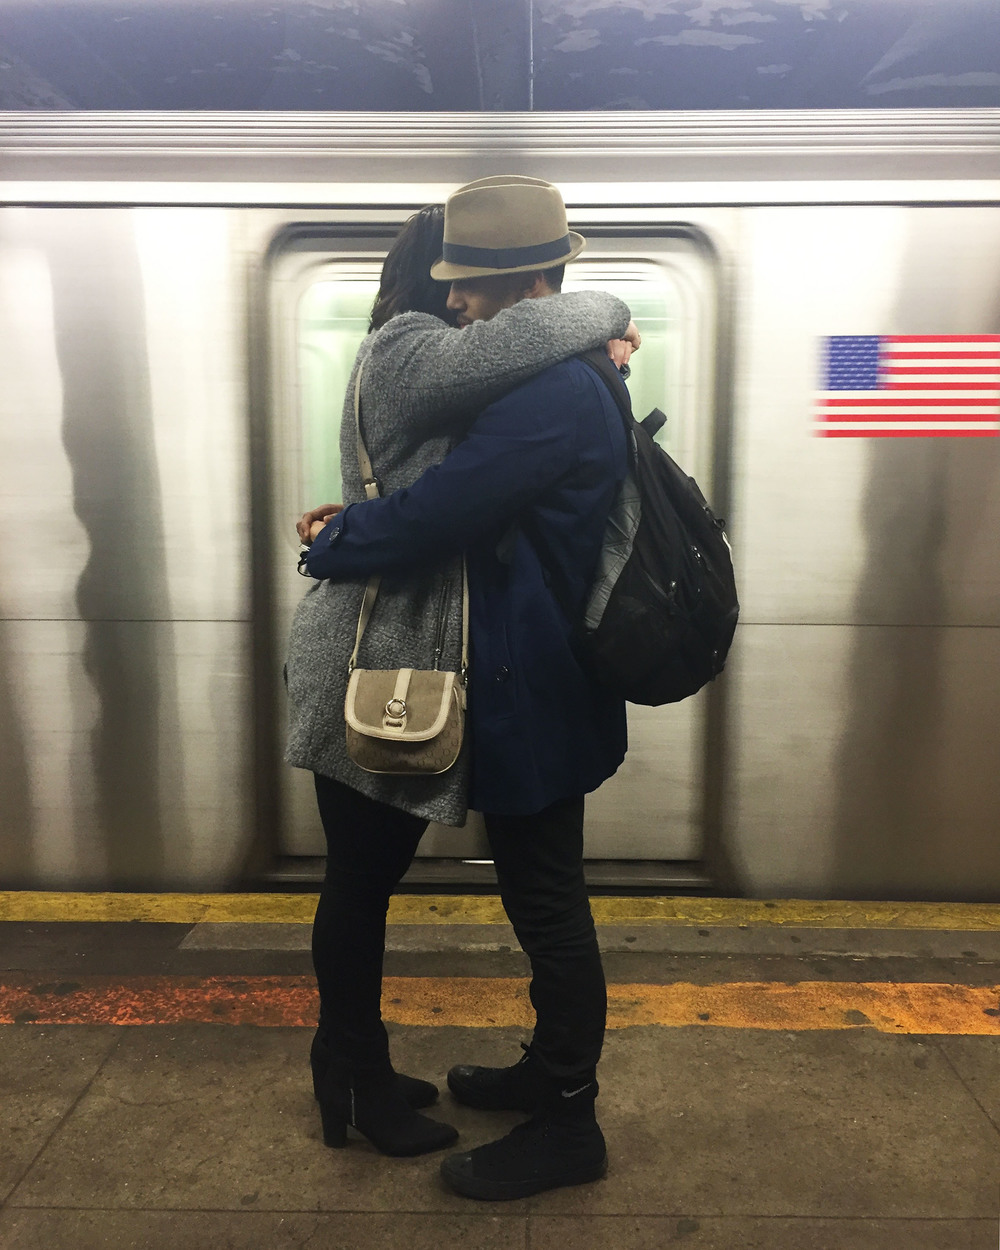 PE_Subway_Embrace.jpg